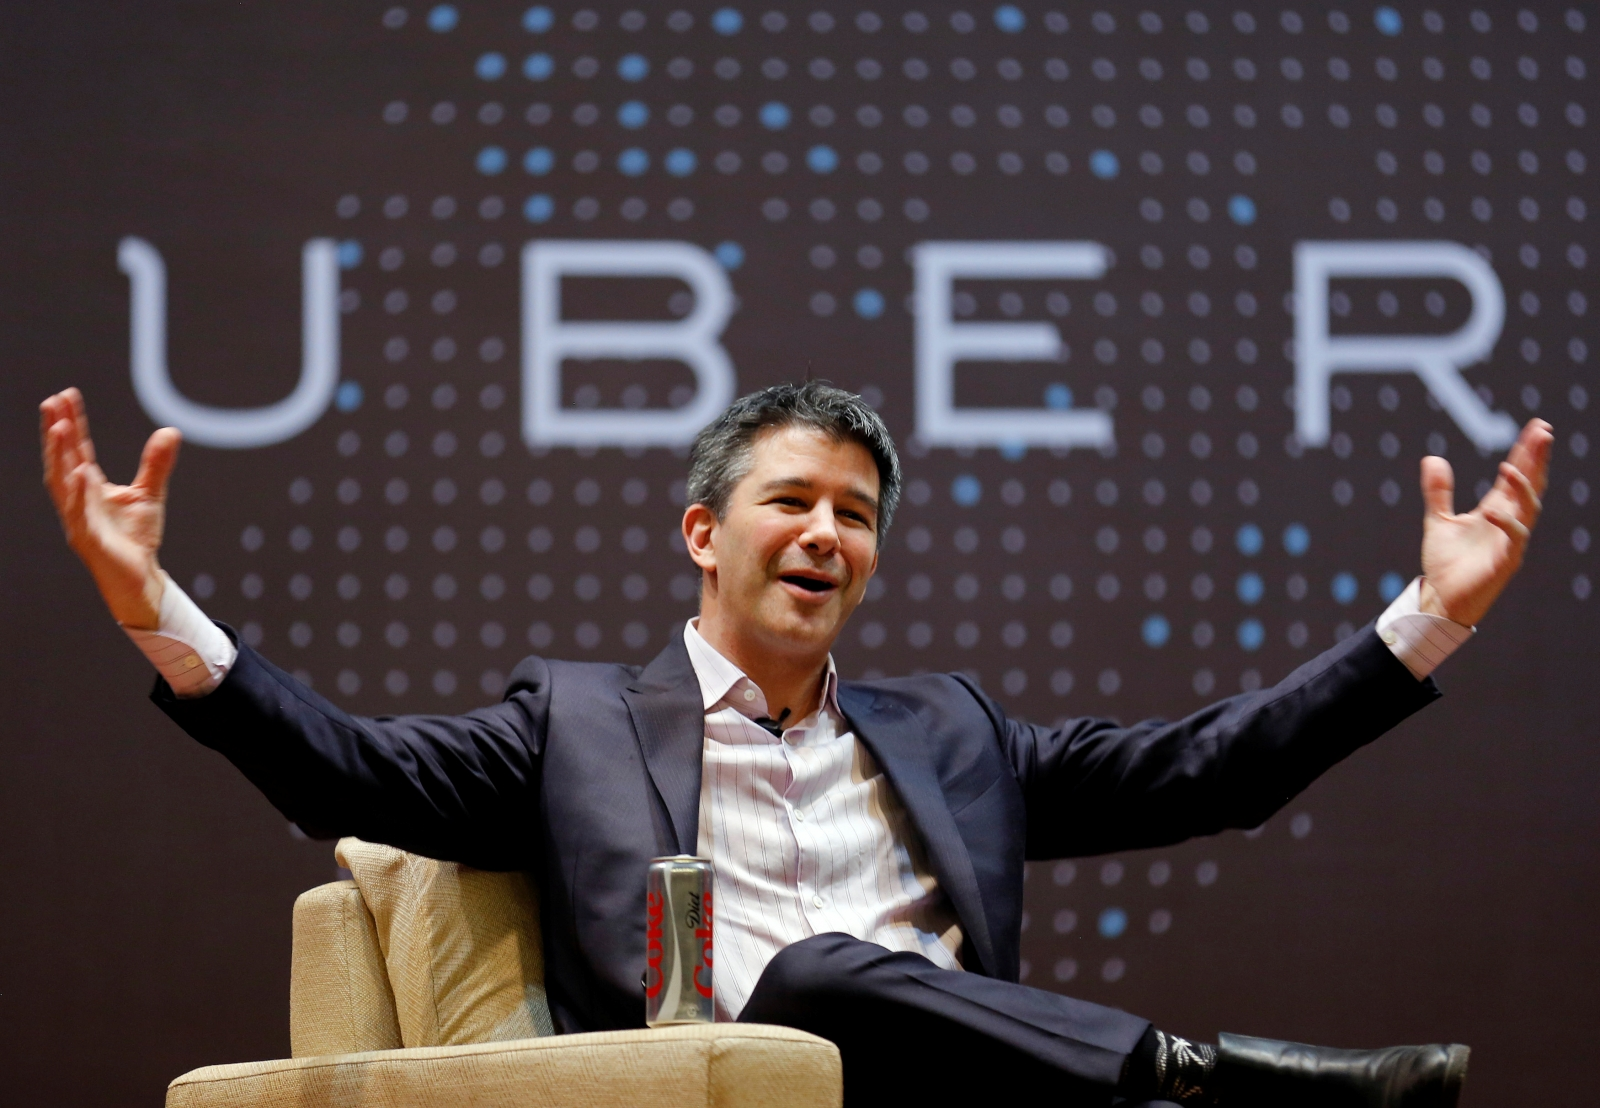 Uber co-founder Travis Kalanick